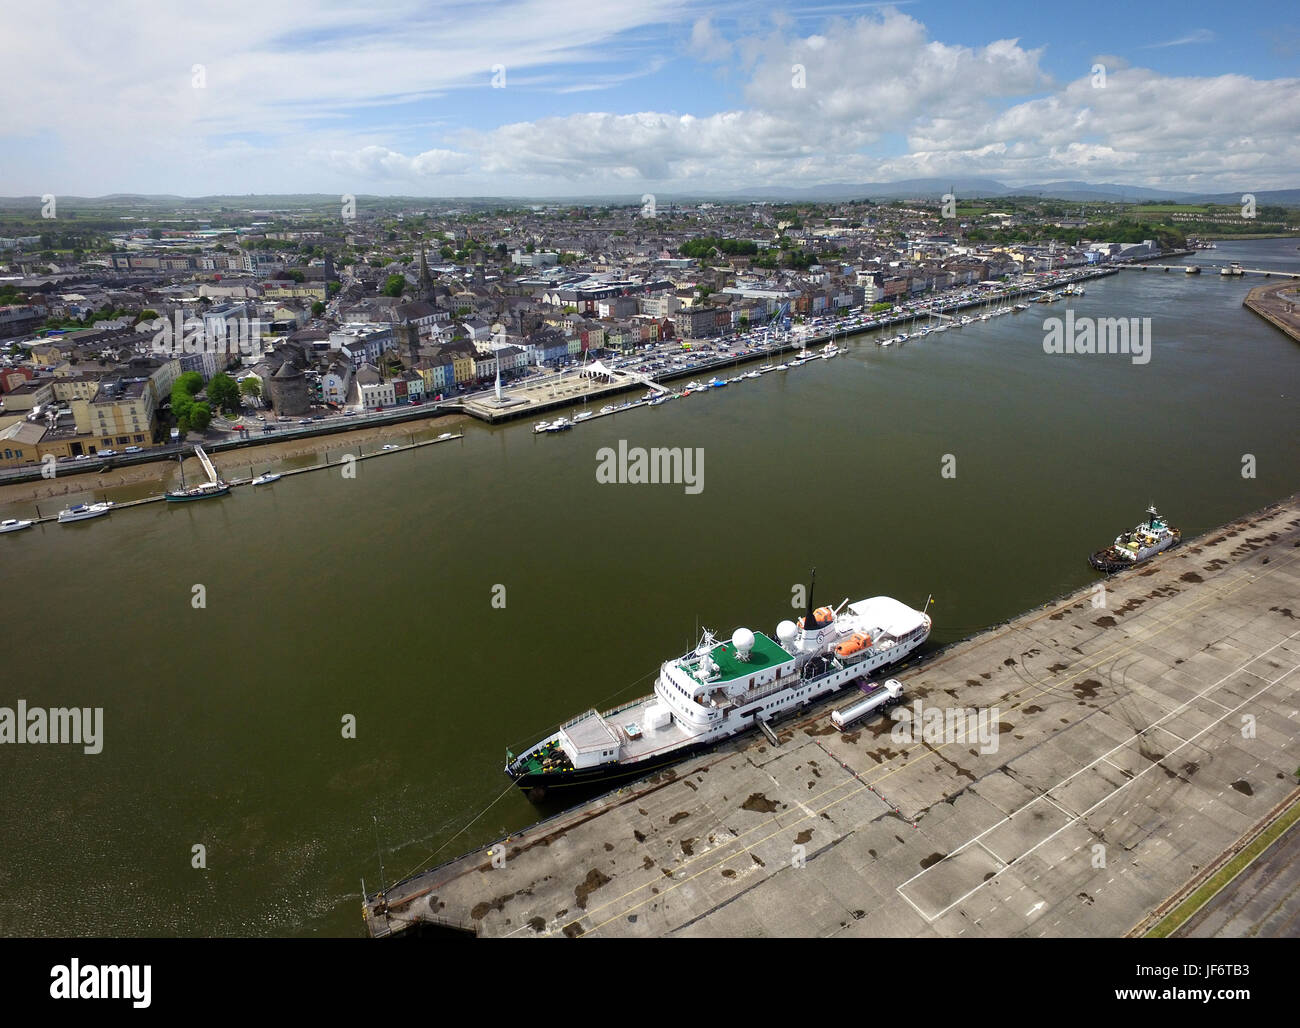 Cruse ship docked in Waterford, Munster, Ireland - Stock Image